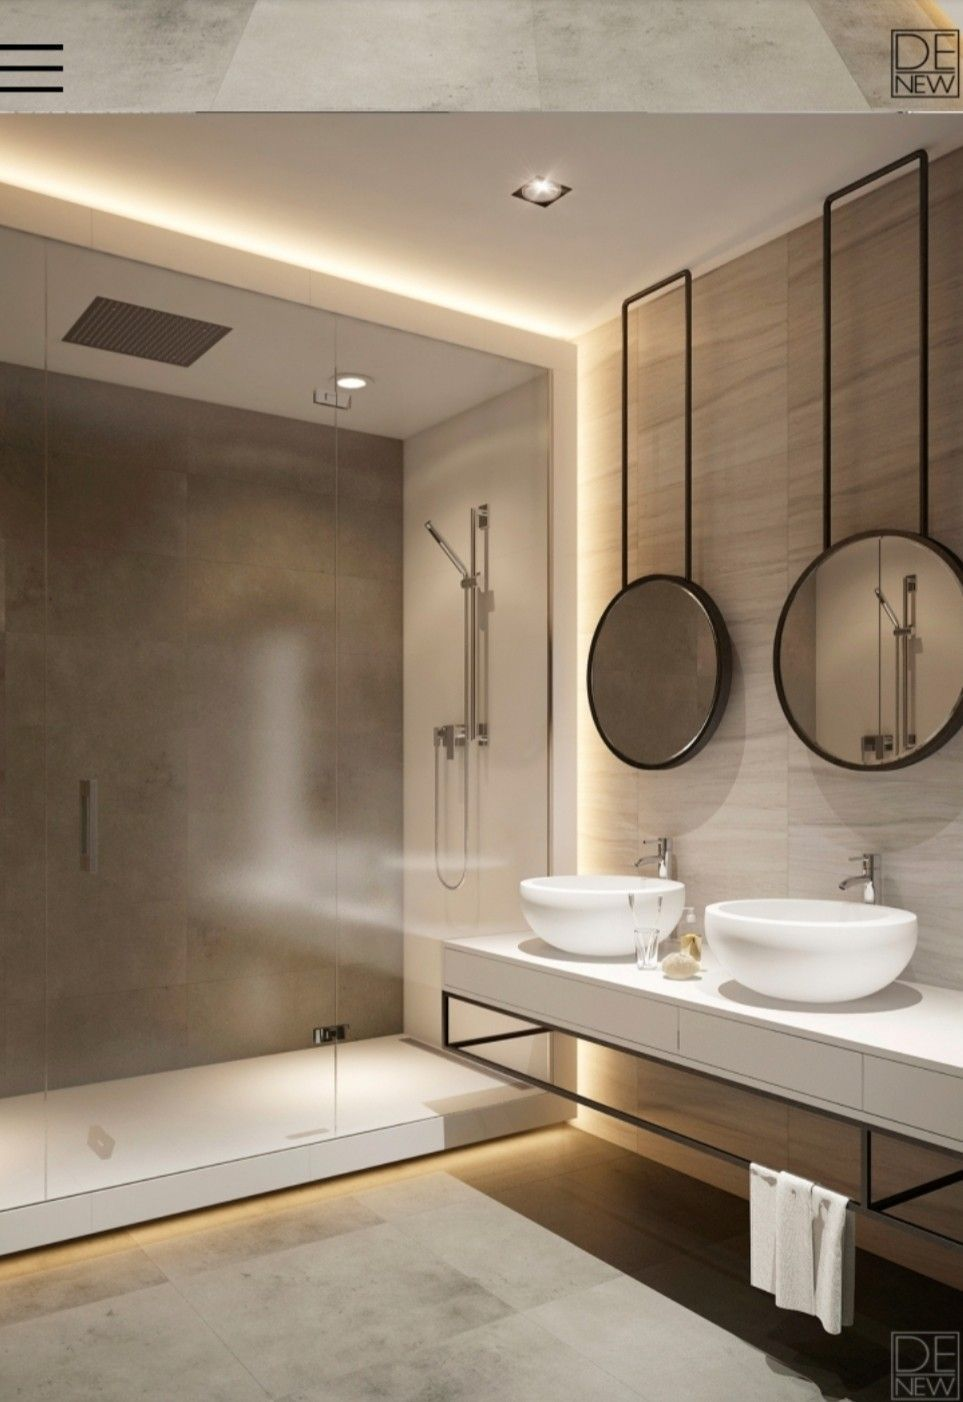 The Easiest Way To Finish Your Bathroom Project Is With These Lighting Ideas Www Lightingstores Eu Visit In 2020 Modern Bathroom Bathroom Interior Luxury Bathroom